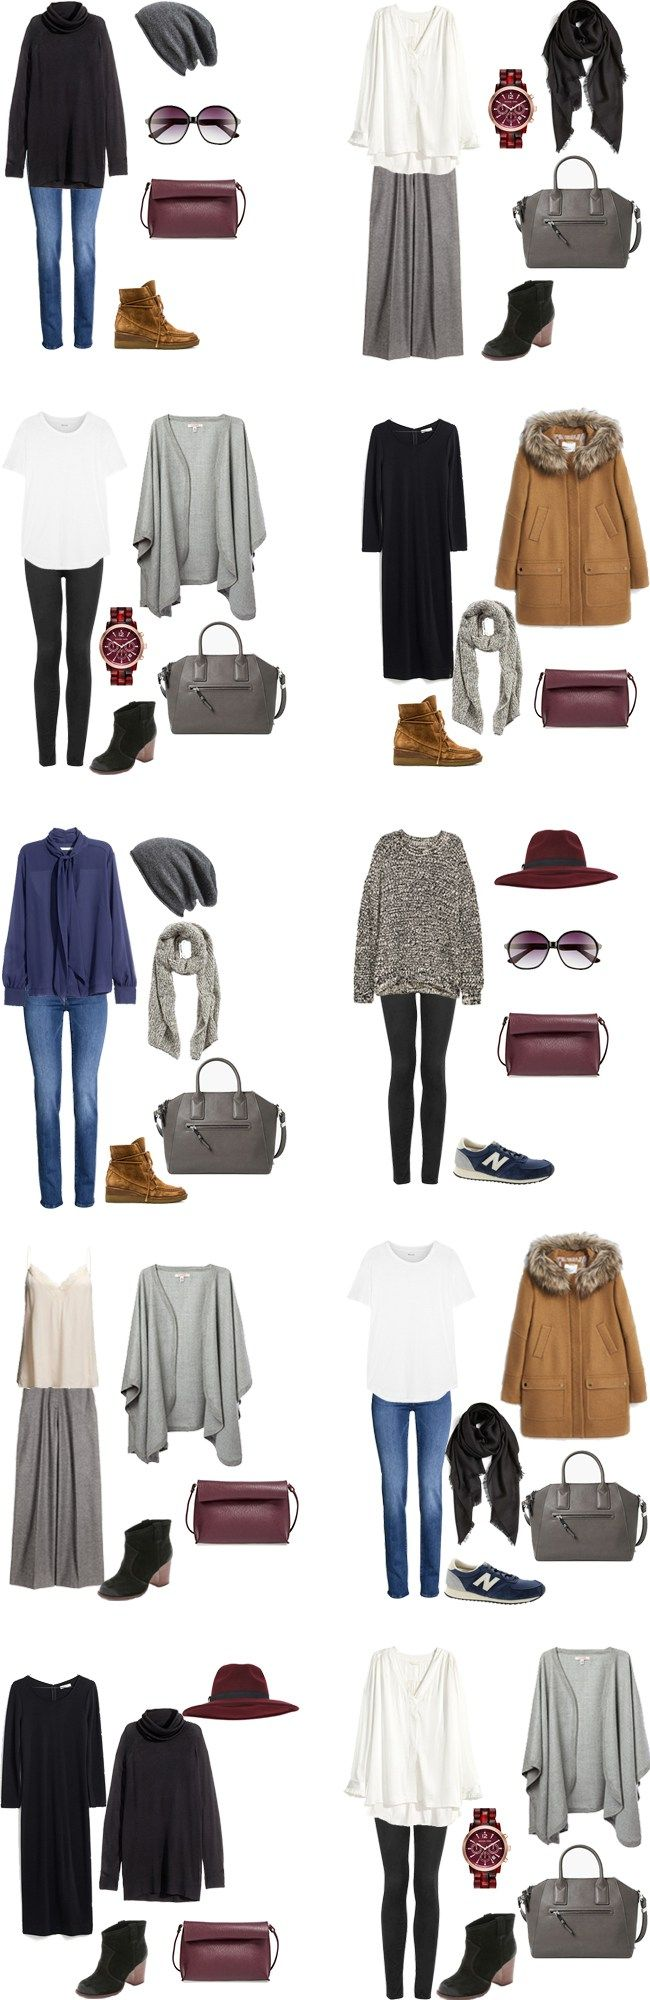 78 Ideas About Germany Fashion On Pinterest Berlin Fashion Minimal Style And Street Style 2016